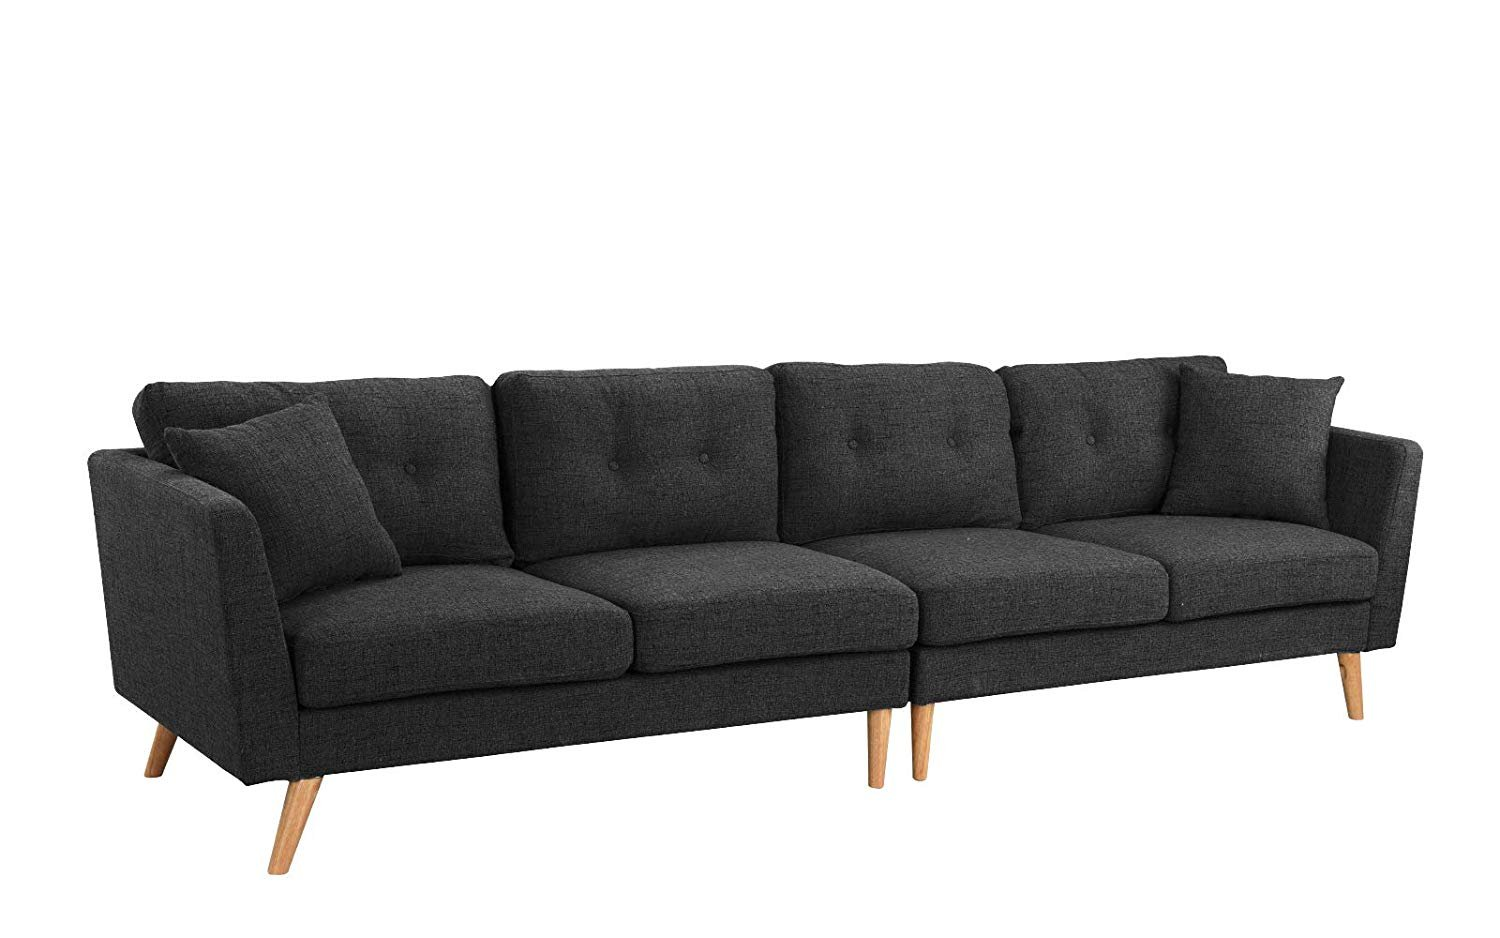 Details about Modern Family Room Couch Upholstered Large Fabric Sofa,  114.9\